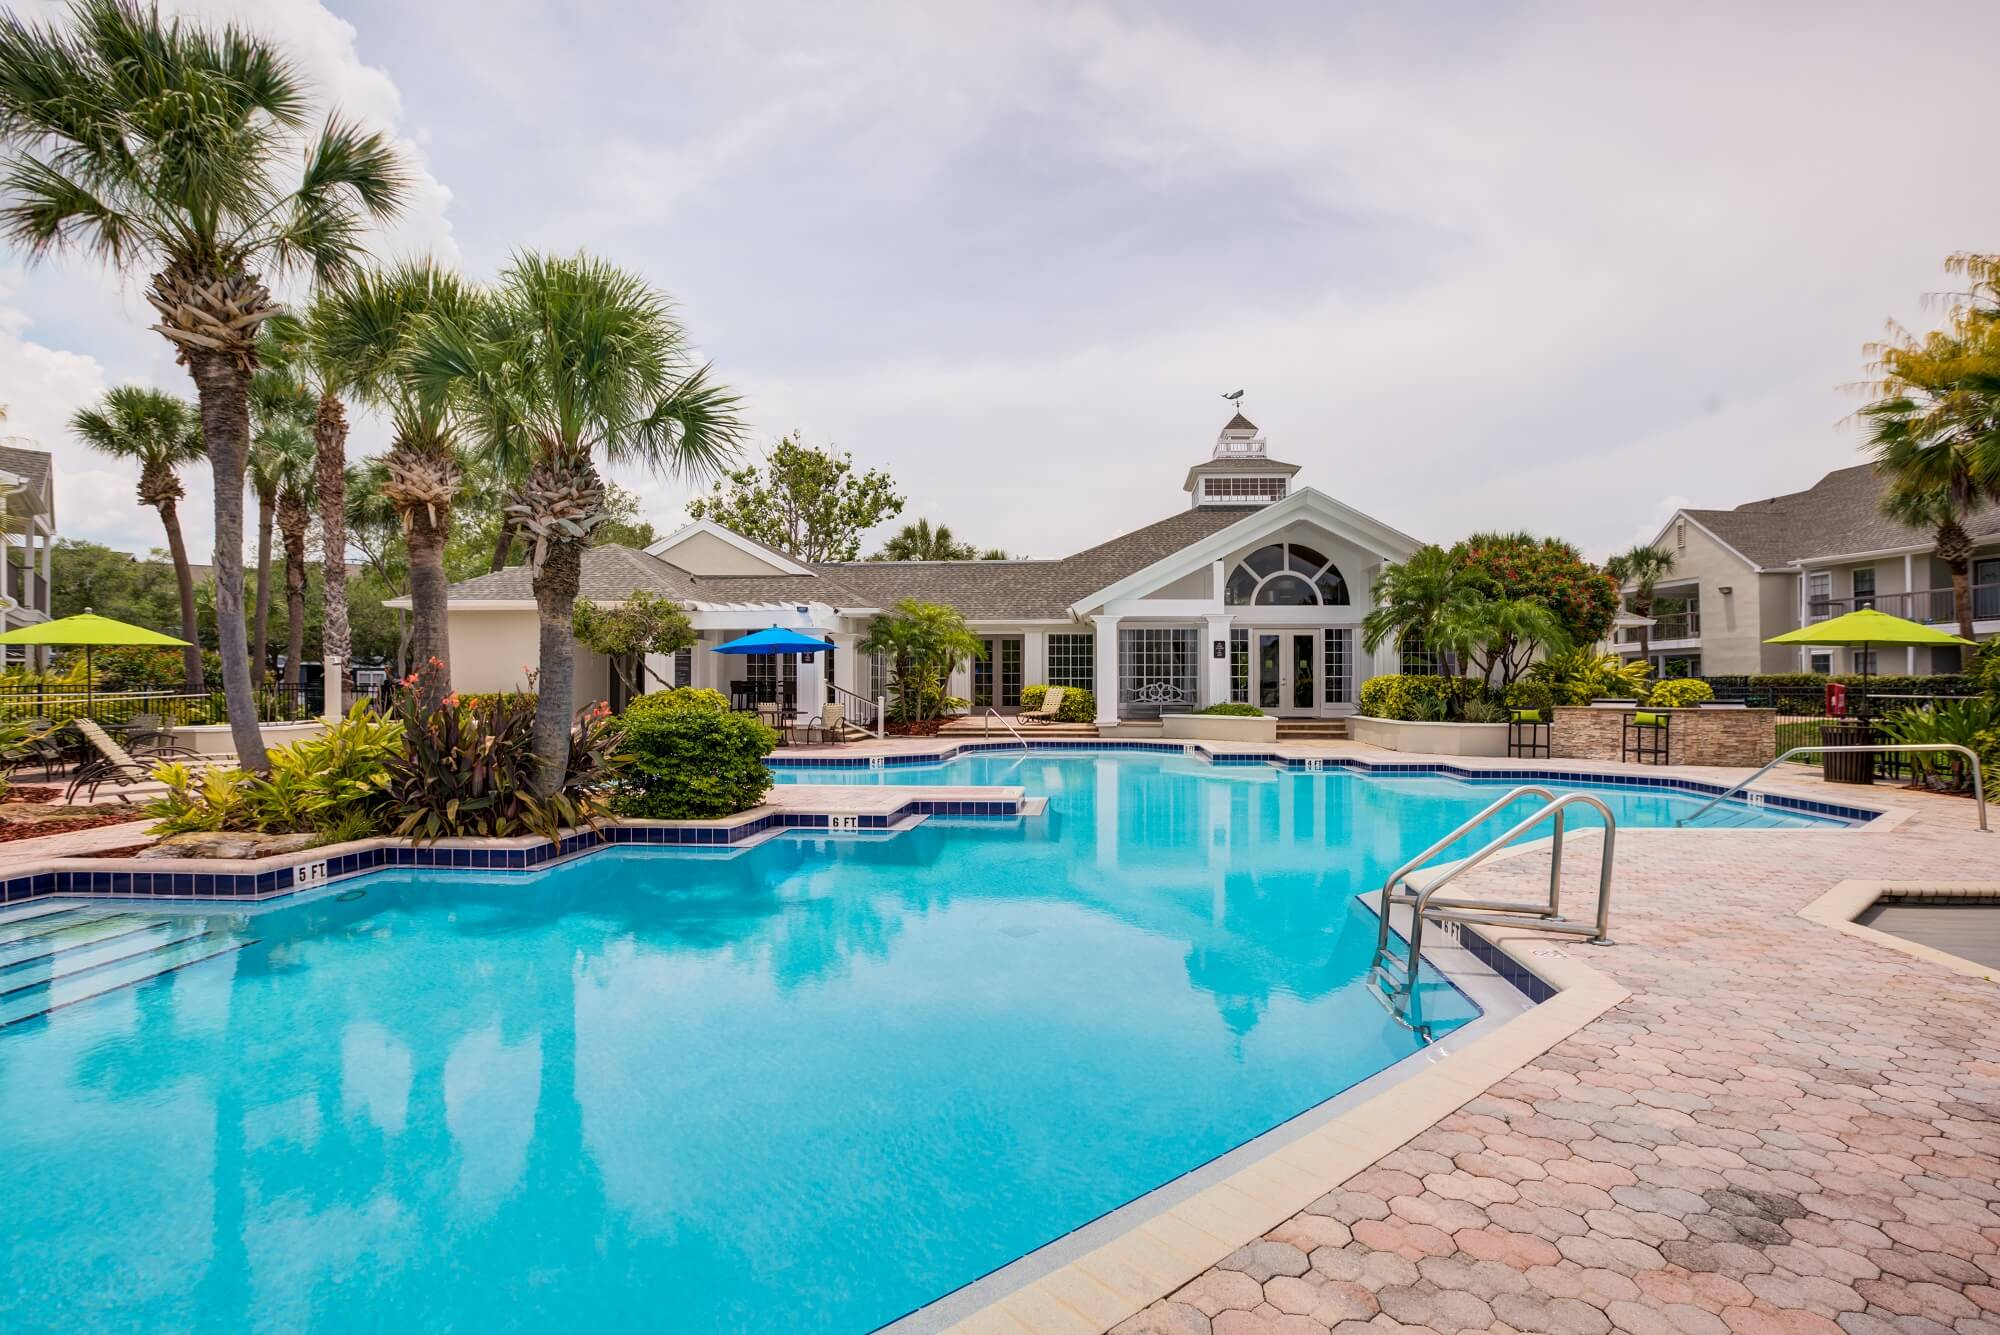 large pool view with palm trees and view of the clubhouse.